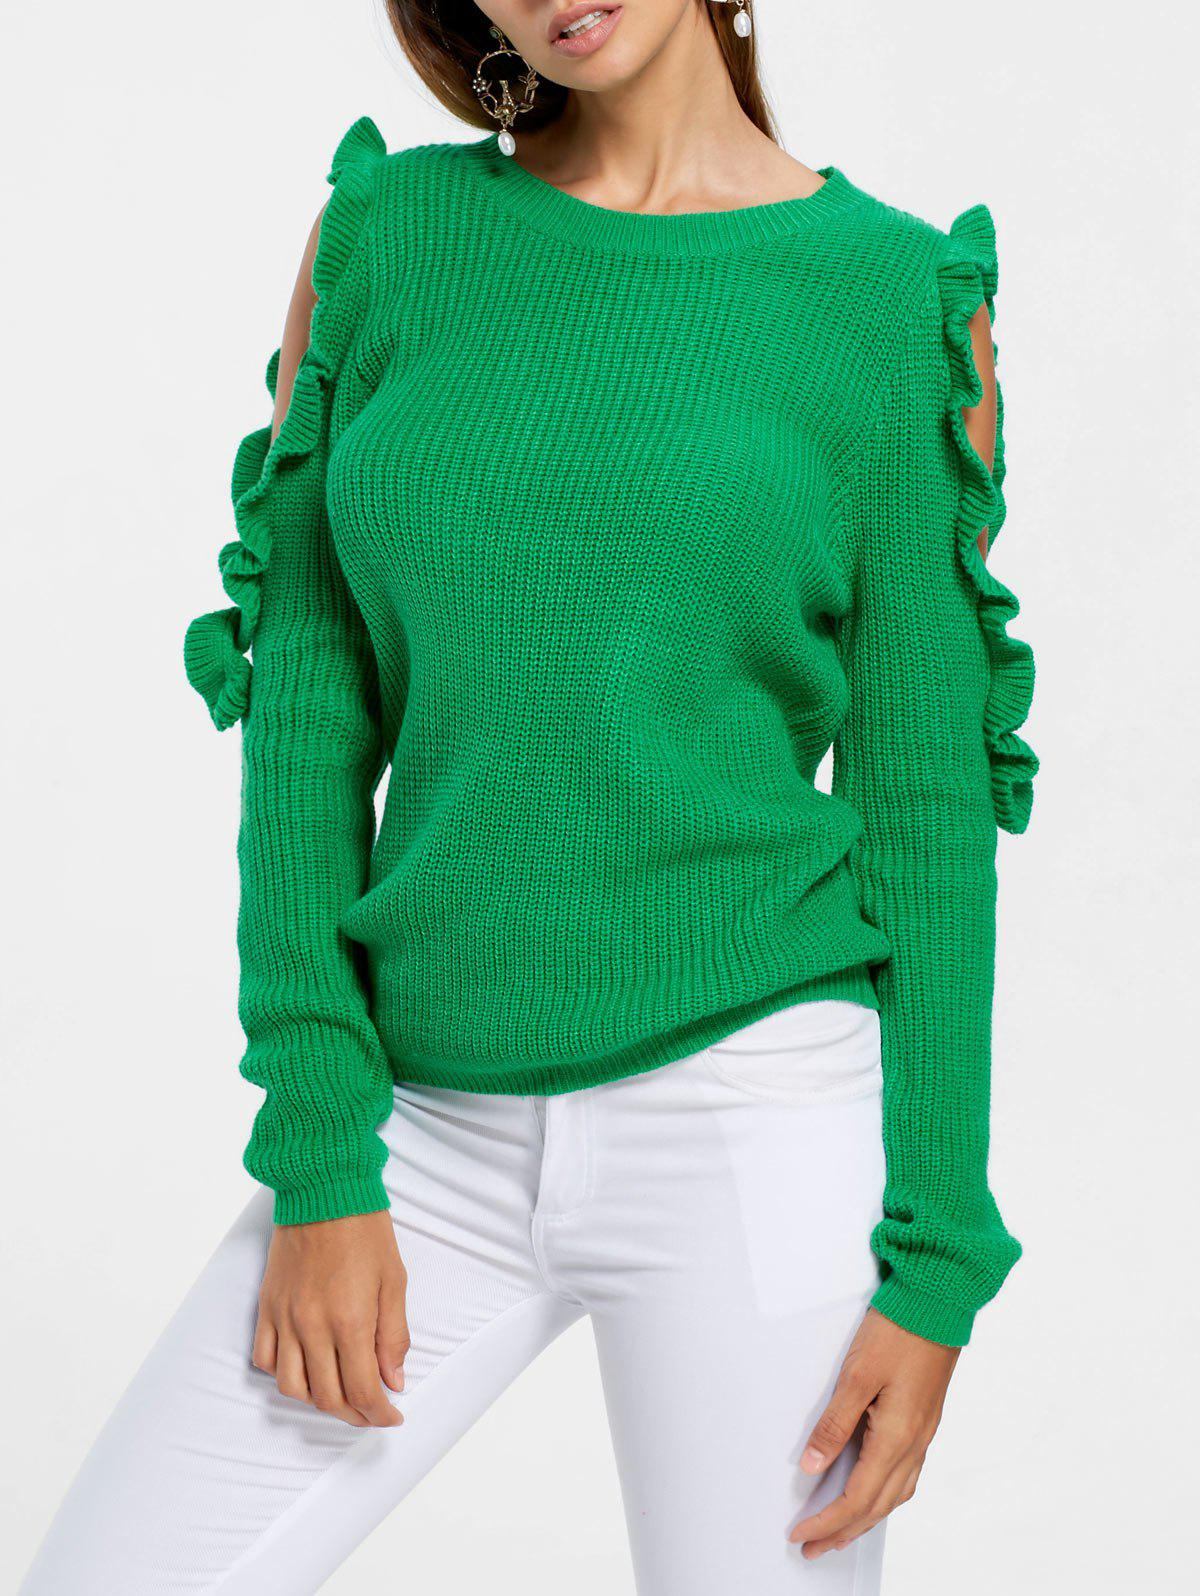 Ruffle Cold Shoulder SweaterWOMEN<br><br>Size: S; Color: GREEN; Type: Pullovers; Material: Acrylic; Sleeve Length: Full; Collar: Crew Neck; Style: Fashion; Pattern Type: Solid; Season: Fall,Spring,Winter; Weight: 0.3100kg; Package Contents: 1 x Sweater;